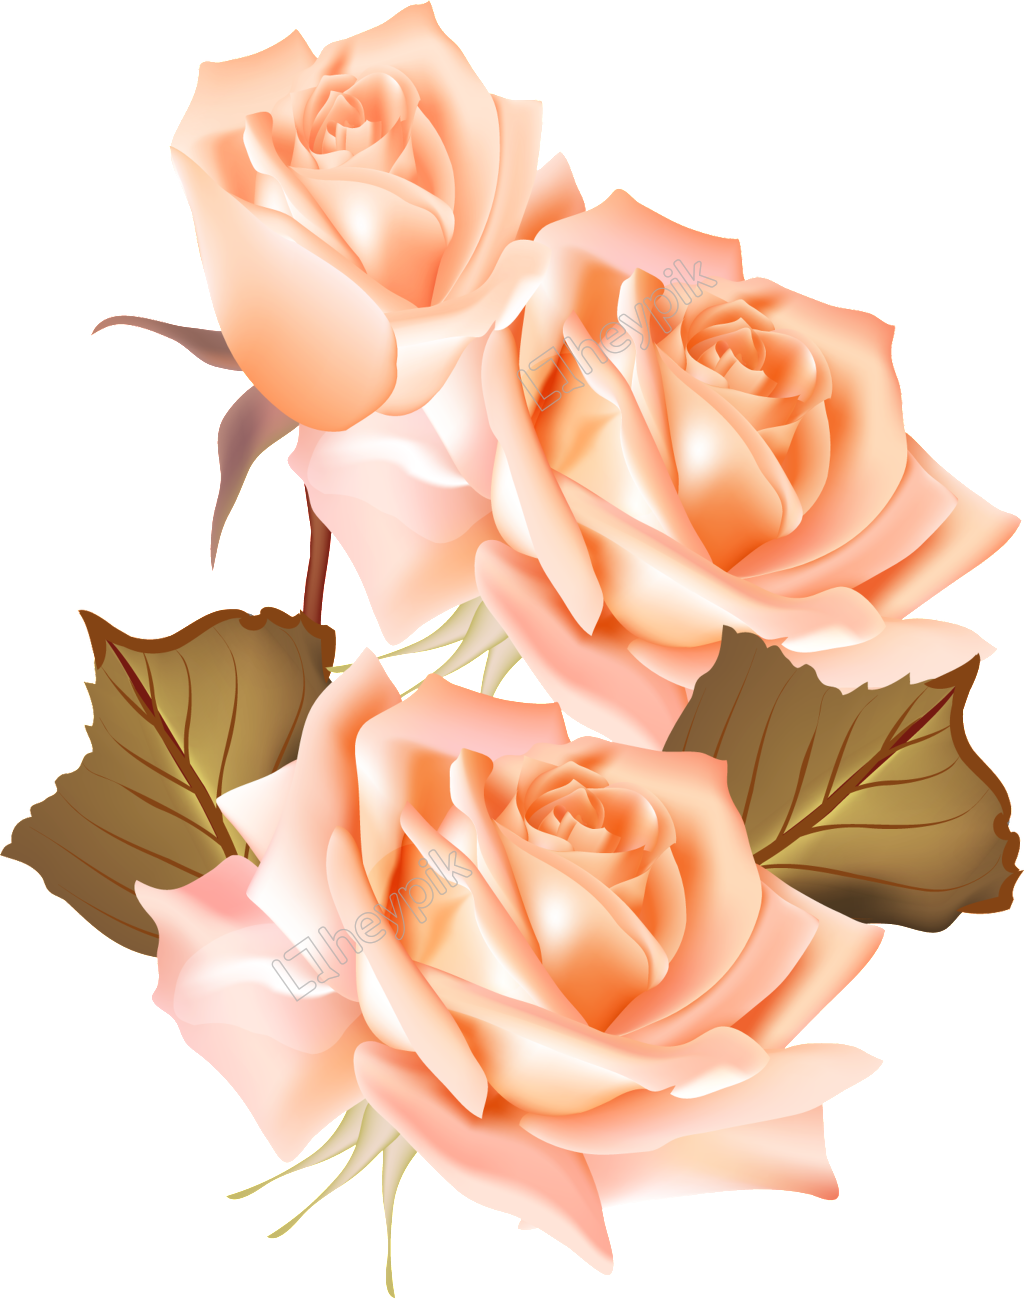 Vectores rosas png. Champ n rosa y